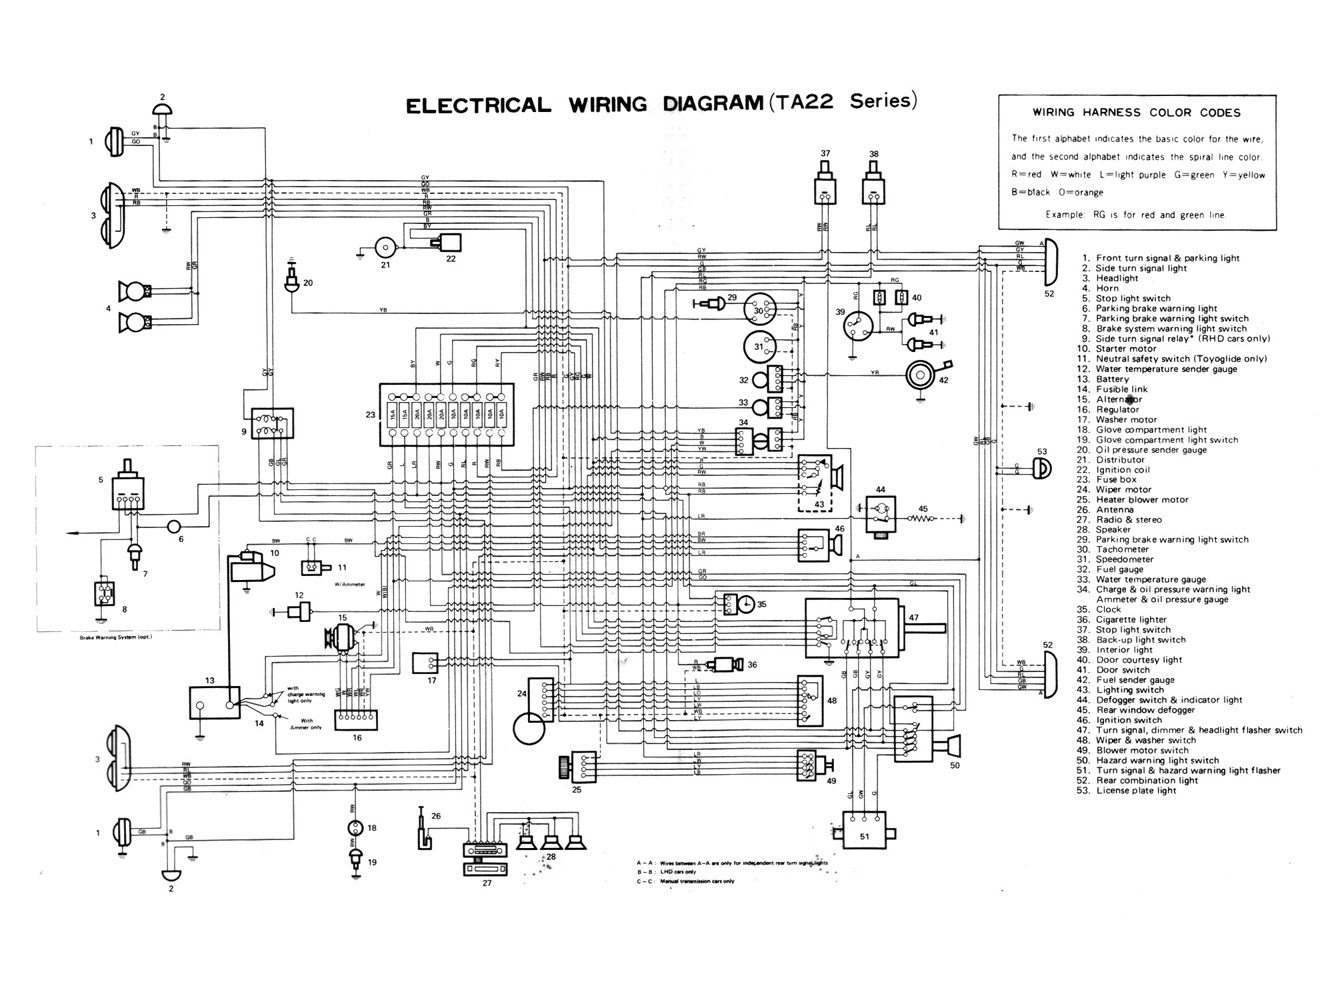 Wiring Diagram Manual Wdm : Toyota celica wiring diagram images